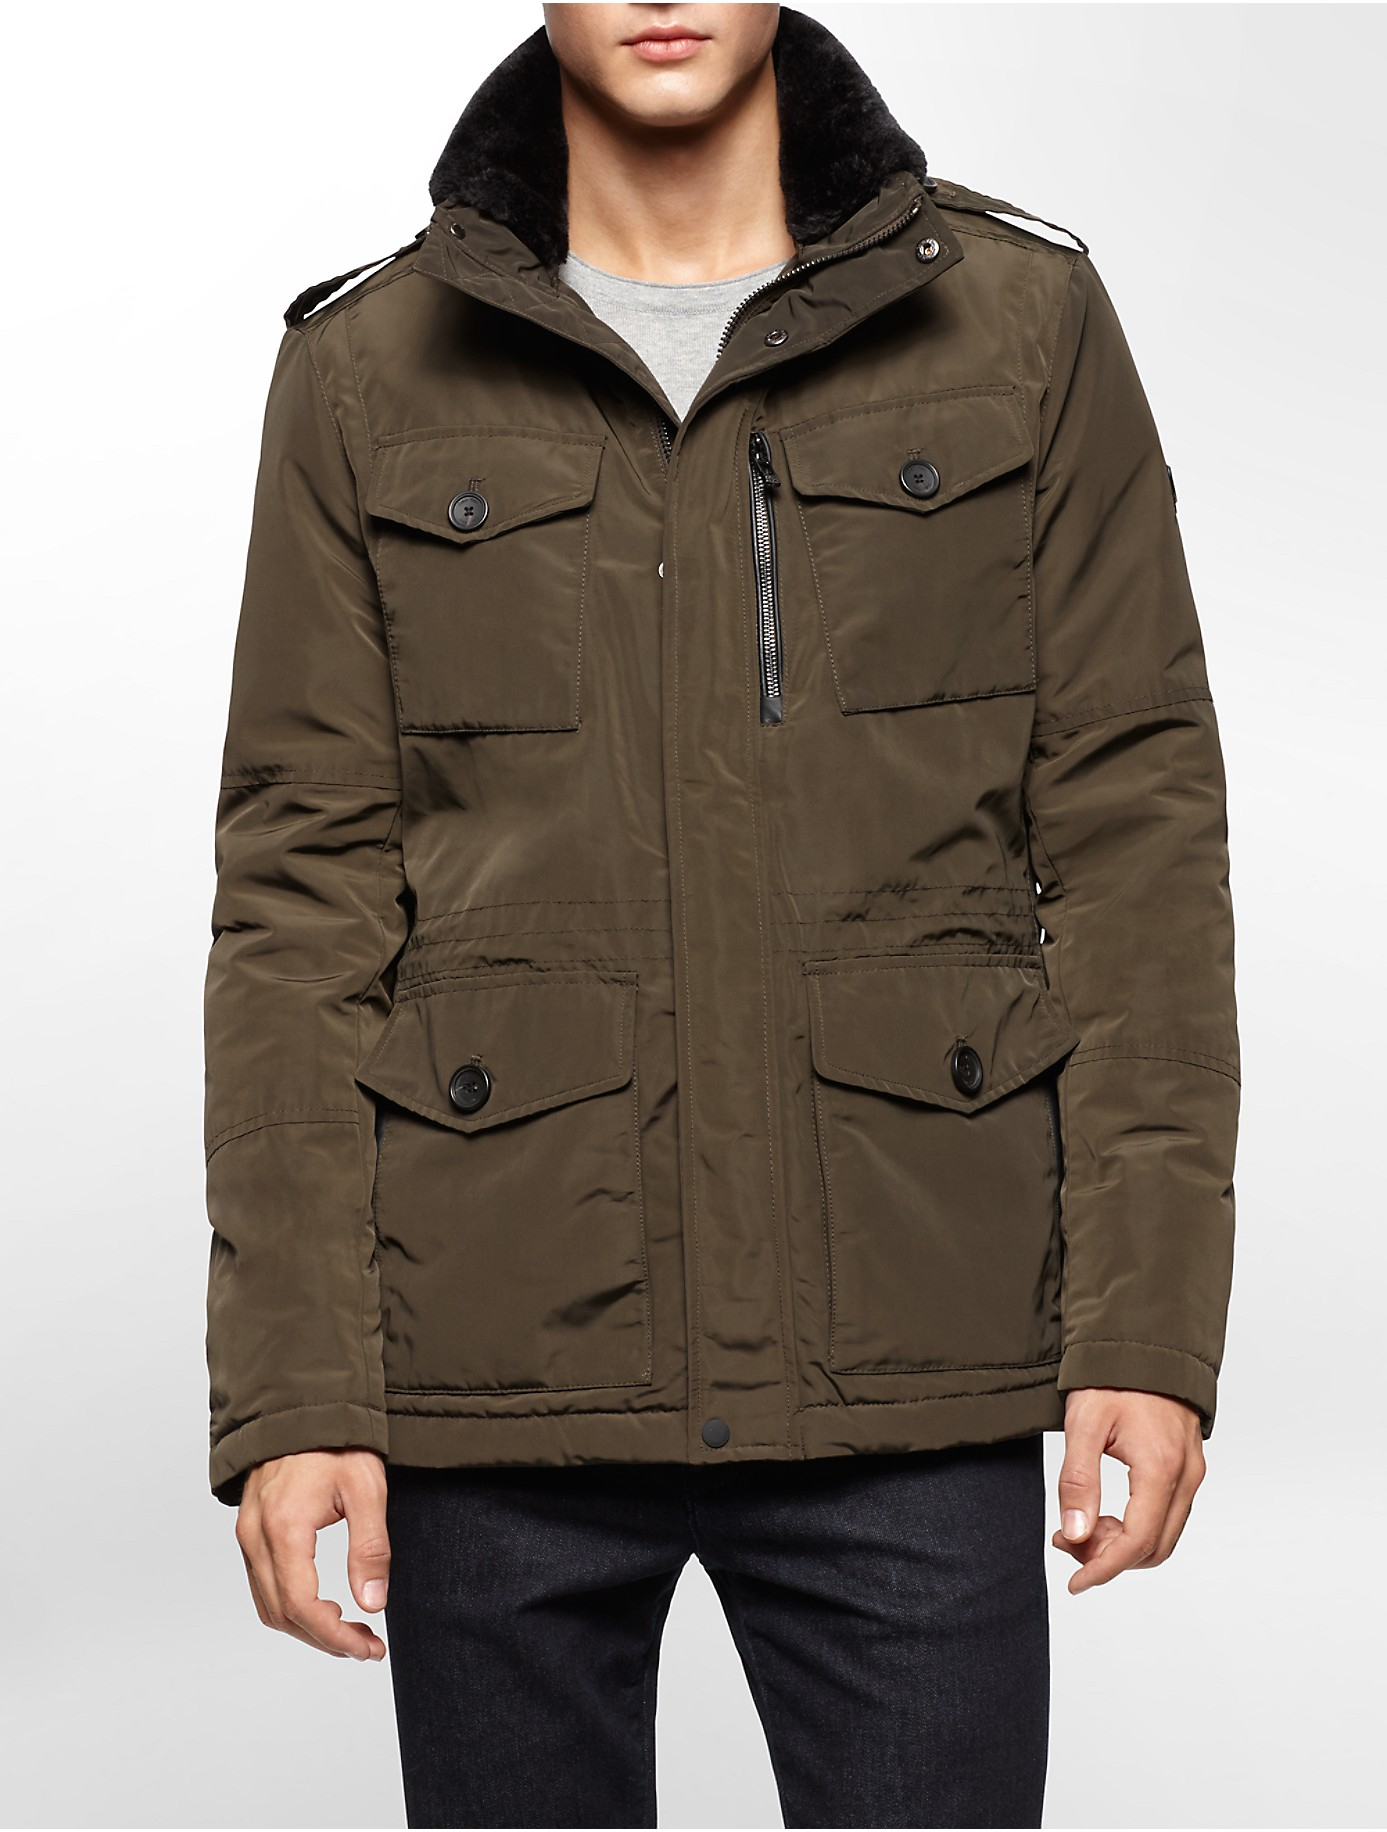 Free shipping on men's jackets & coats at coolvloadx4.ga Shop bomber, trench, overcoat, and pea coats from Burberry, The North Face & more. Totally free shipping & returns.